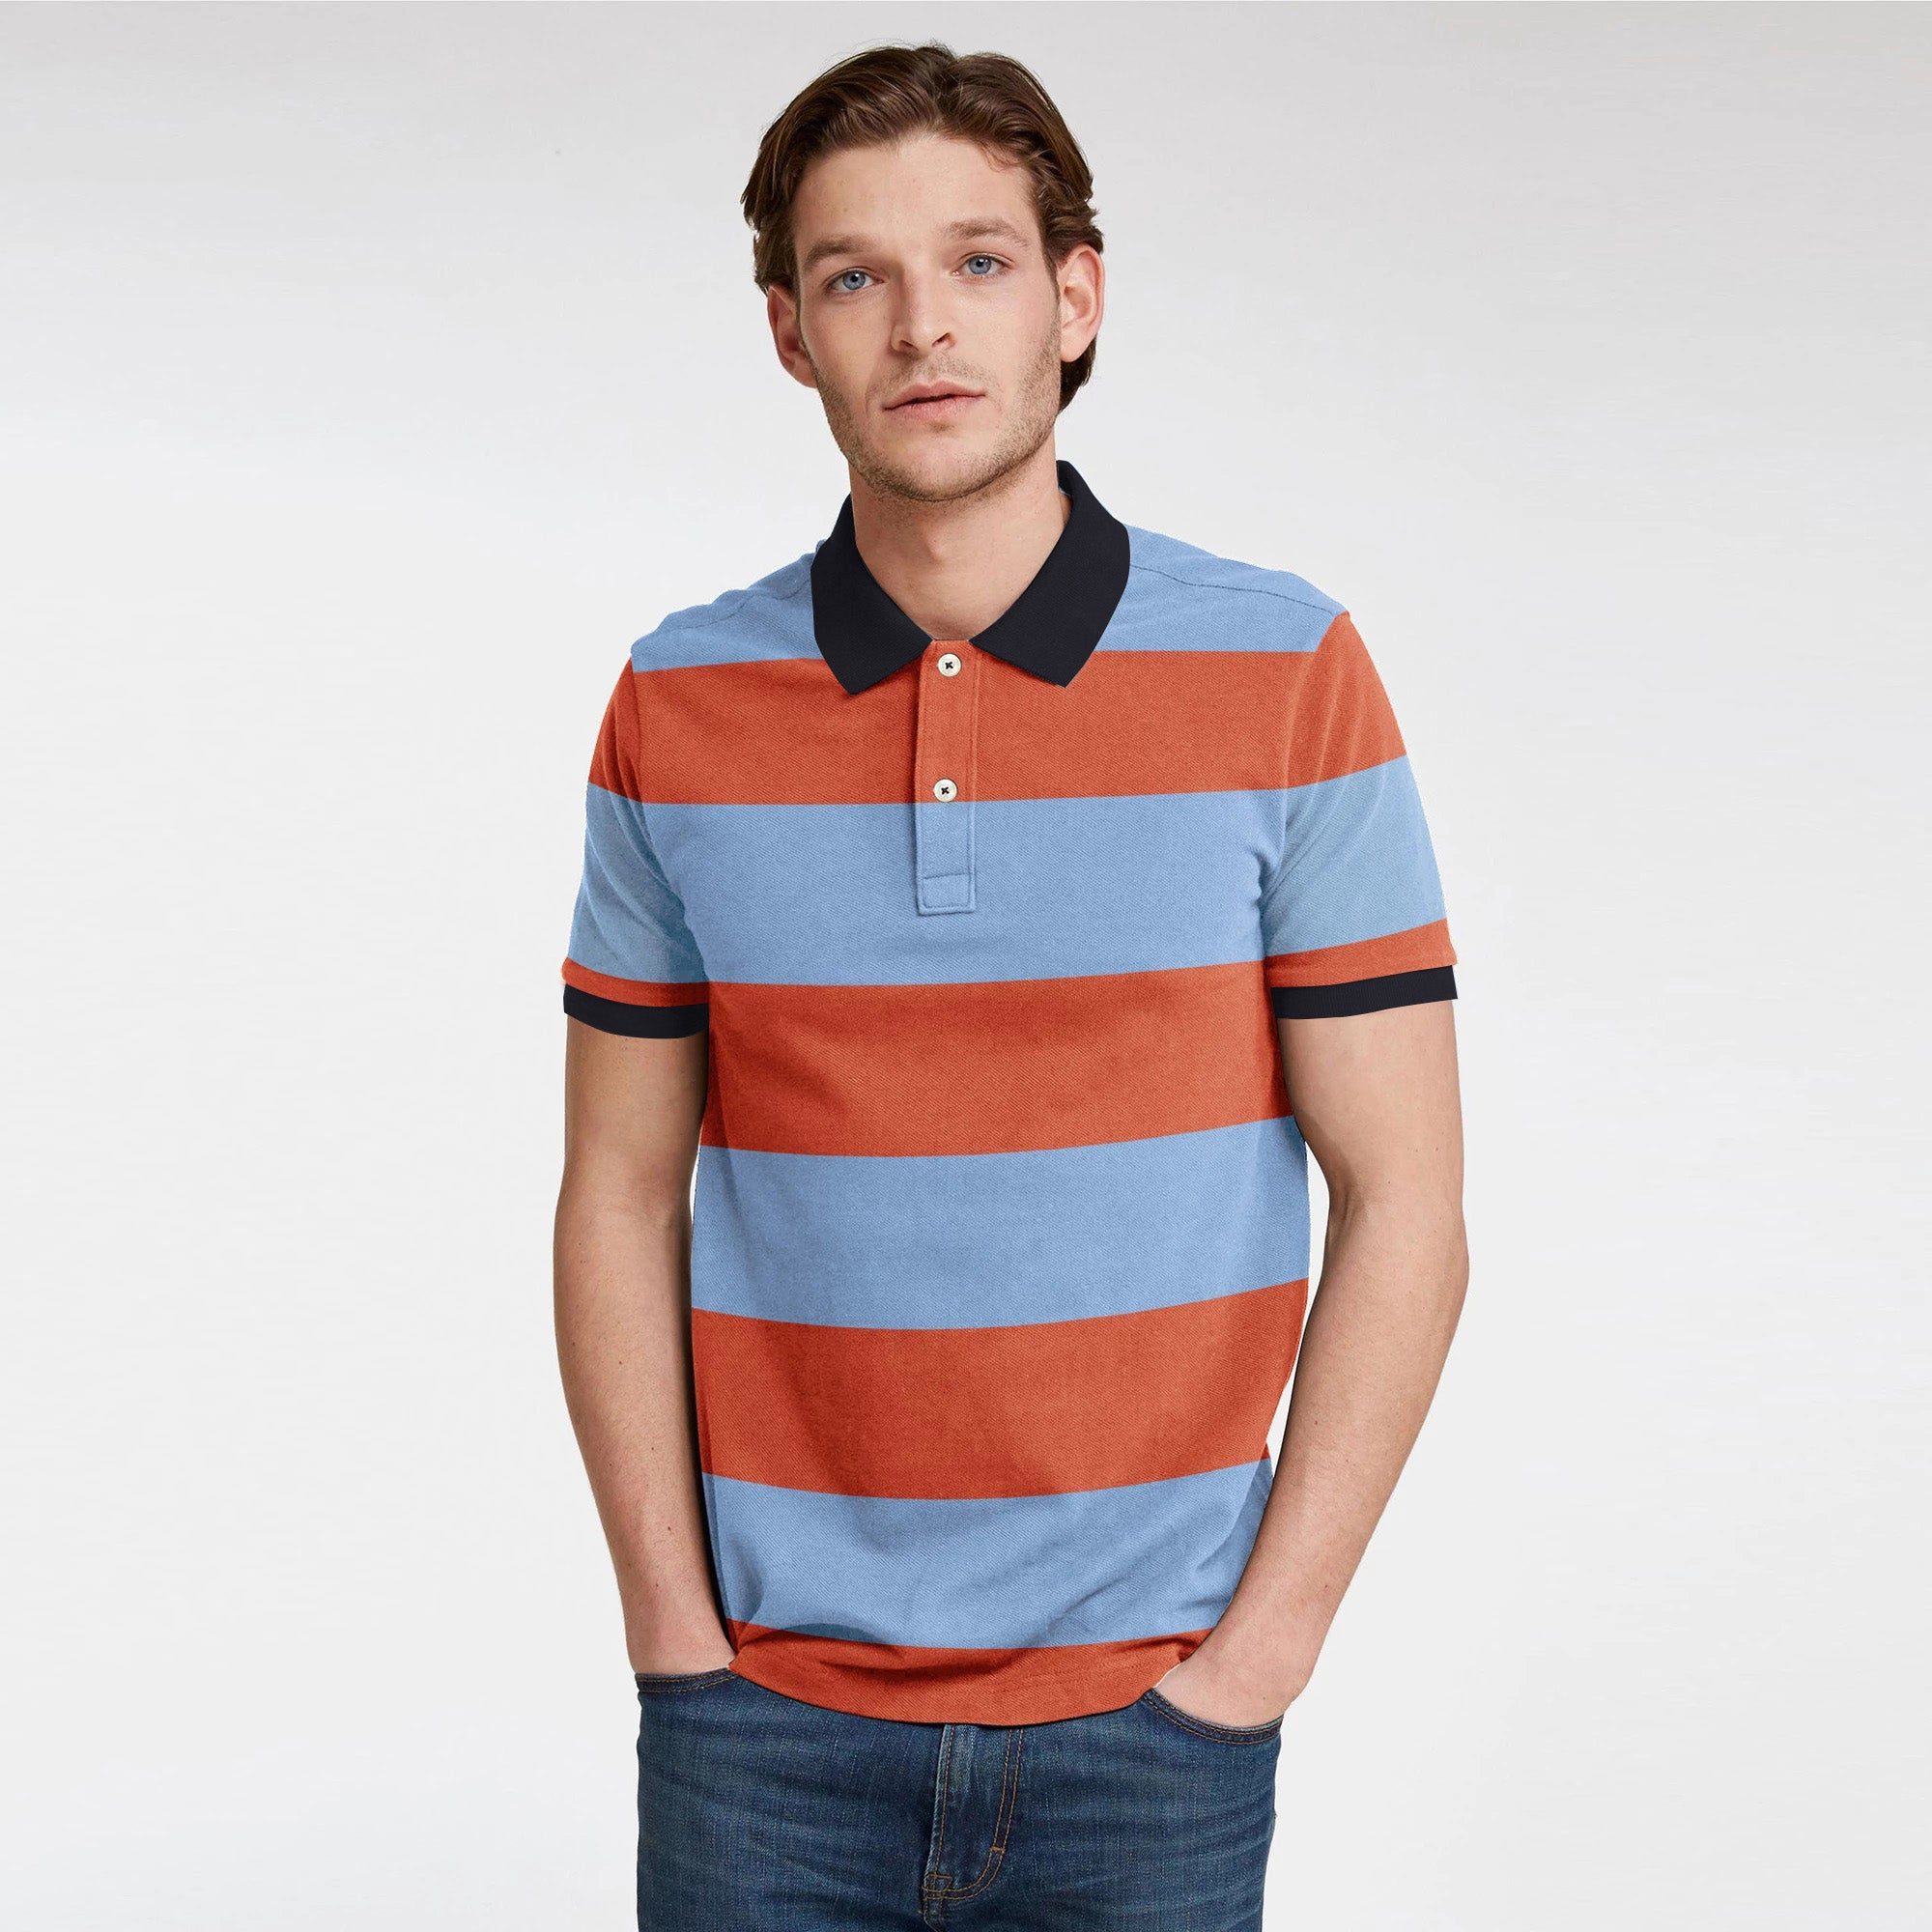 brandsego - GAP Short Sleeve P.Q Polo Shirt For Men-Sky & Orange Stripe-NA9489